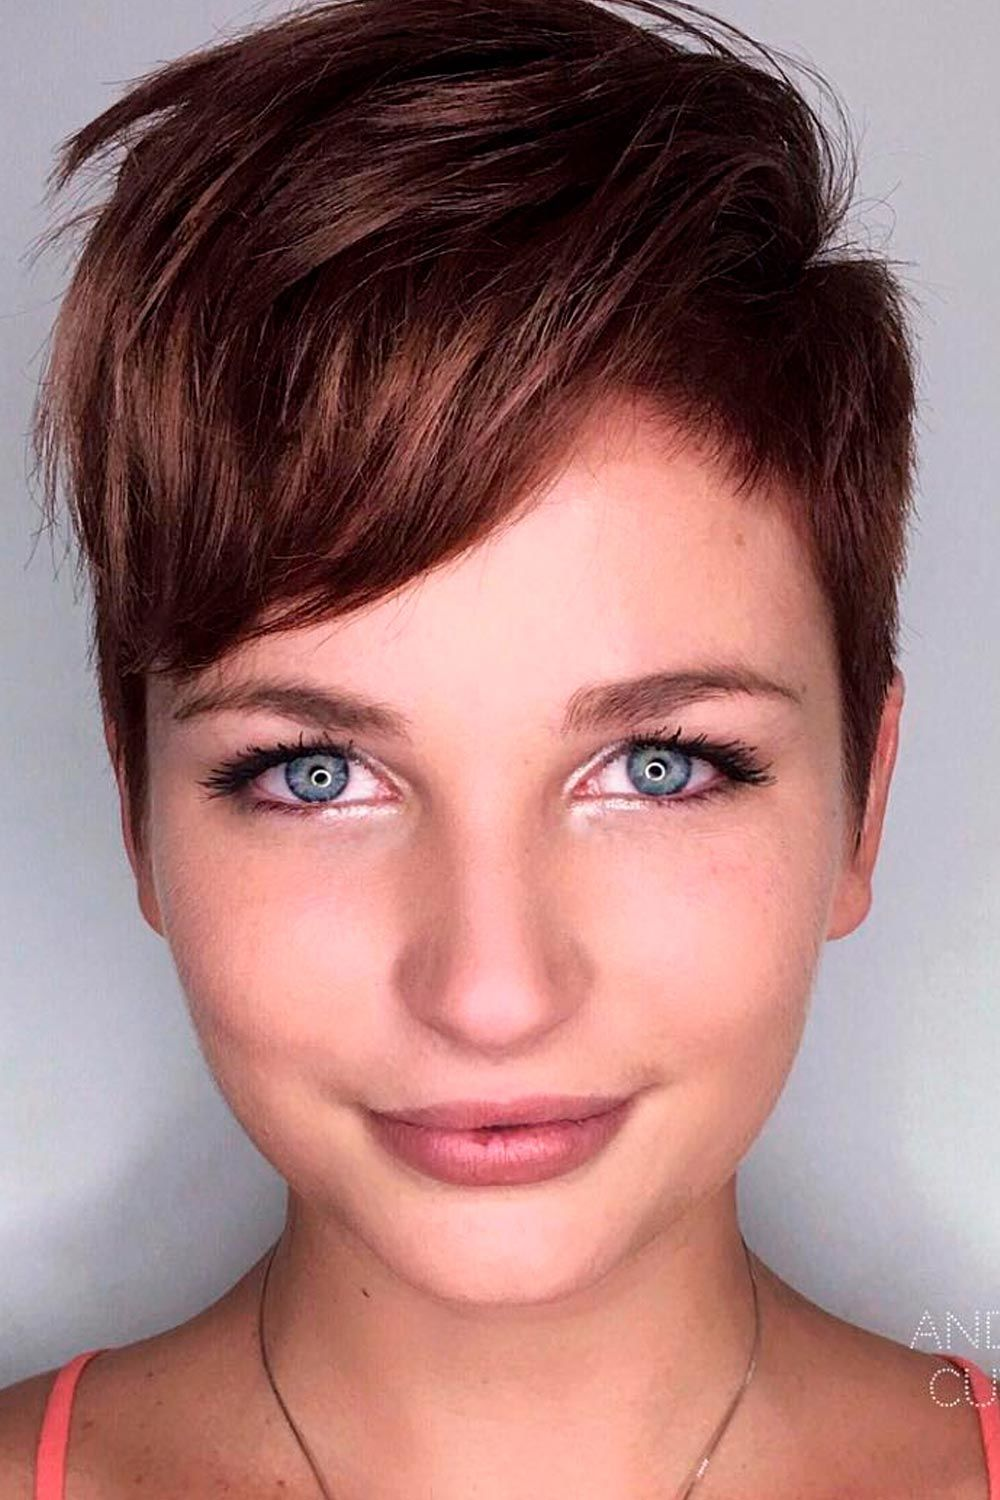 Asymmetry Is The Best Choice, haircuts for chubby faces, shaggy haircut for round faces